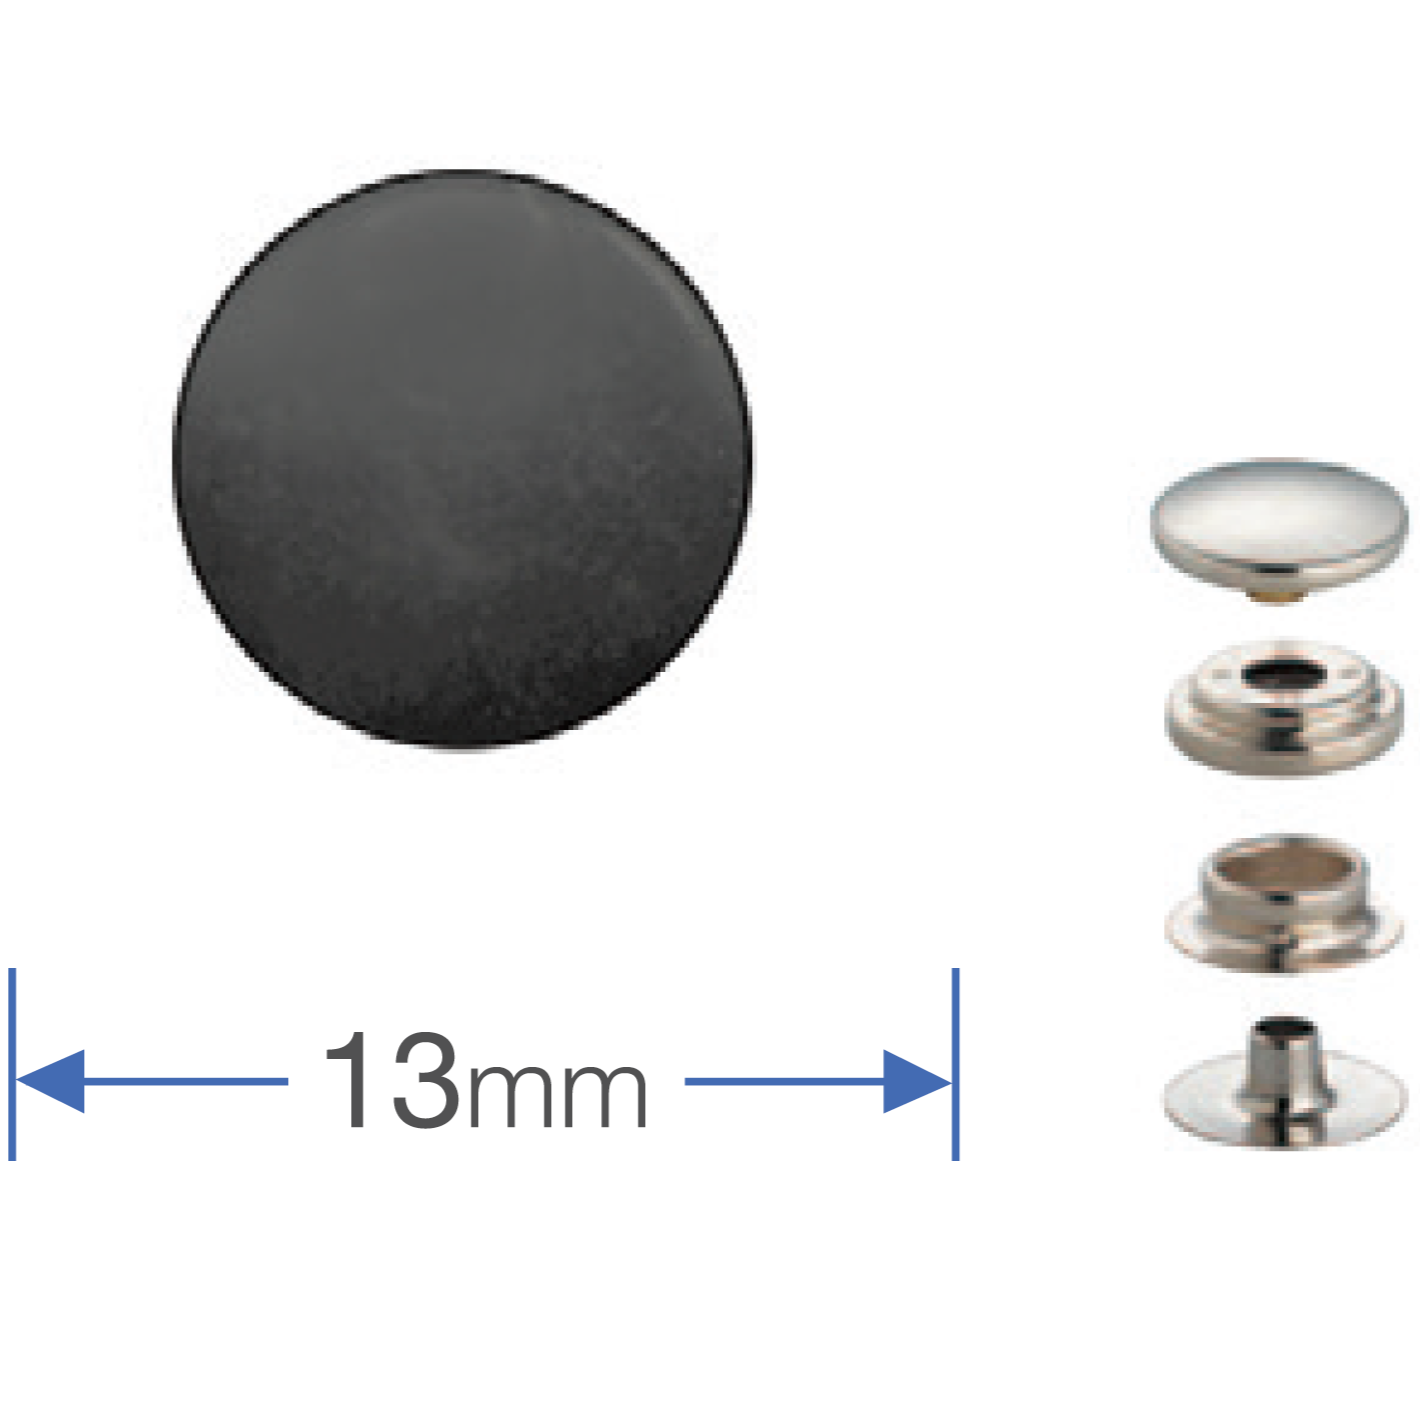 Press Studs (Non-Sew) - Gun Black 13mm Heavyweight: PACK OF 10